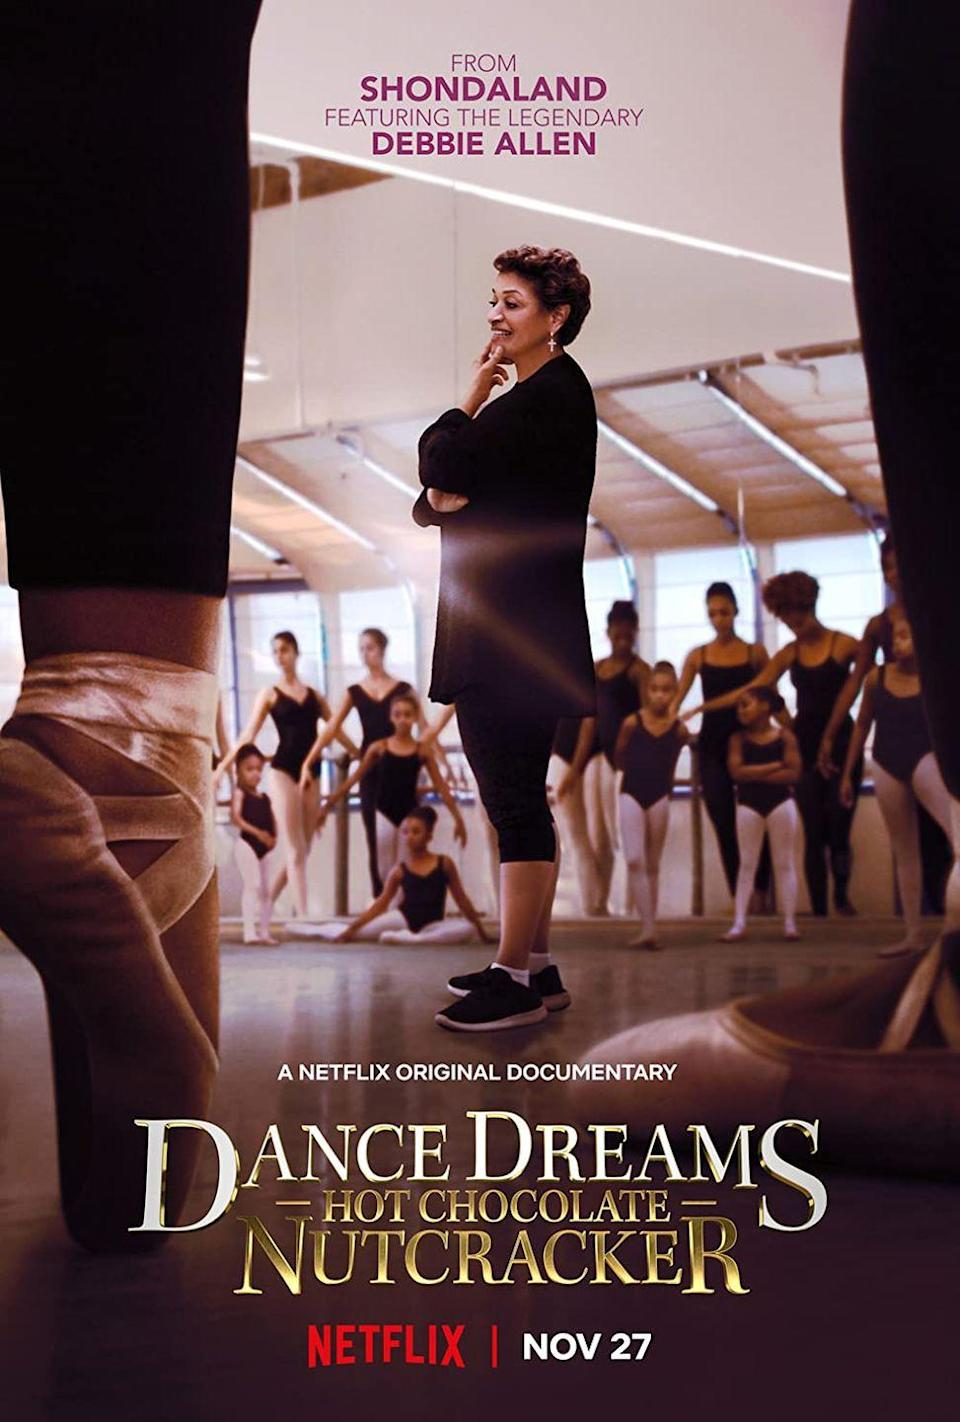 """<p>It just isn't the holiday season without a performance of <em>The Nutcracker</em>. And with most live performances cancelled this year, Netflix is giving audiences a behind-the-scenes look at legendary dancer and choreographer Debbie Allen's original rendition of the classic ballet in this new documentary. Trust, you'll be giving this one a standing ovation.</p><p><a class=""""link rapid-noclick-resp"""" href=""""https://www.netflix.com/title/80217229"""" rel=""""nofollow noopener"""" target=""""_blank"""" data-ylk=""""slk:Watch Now"""">Watch Now</a></p>"""